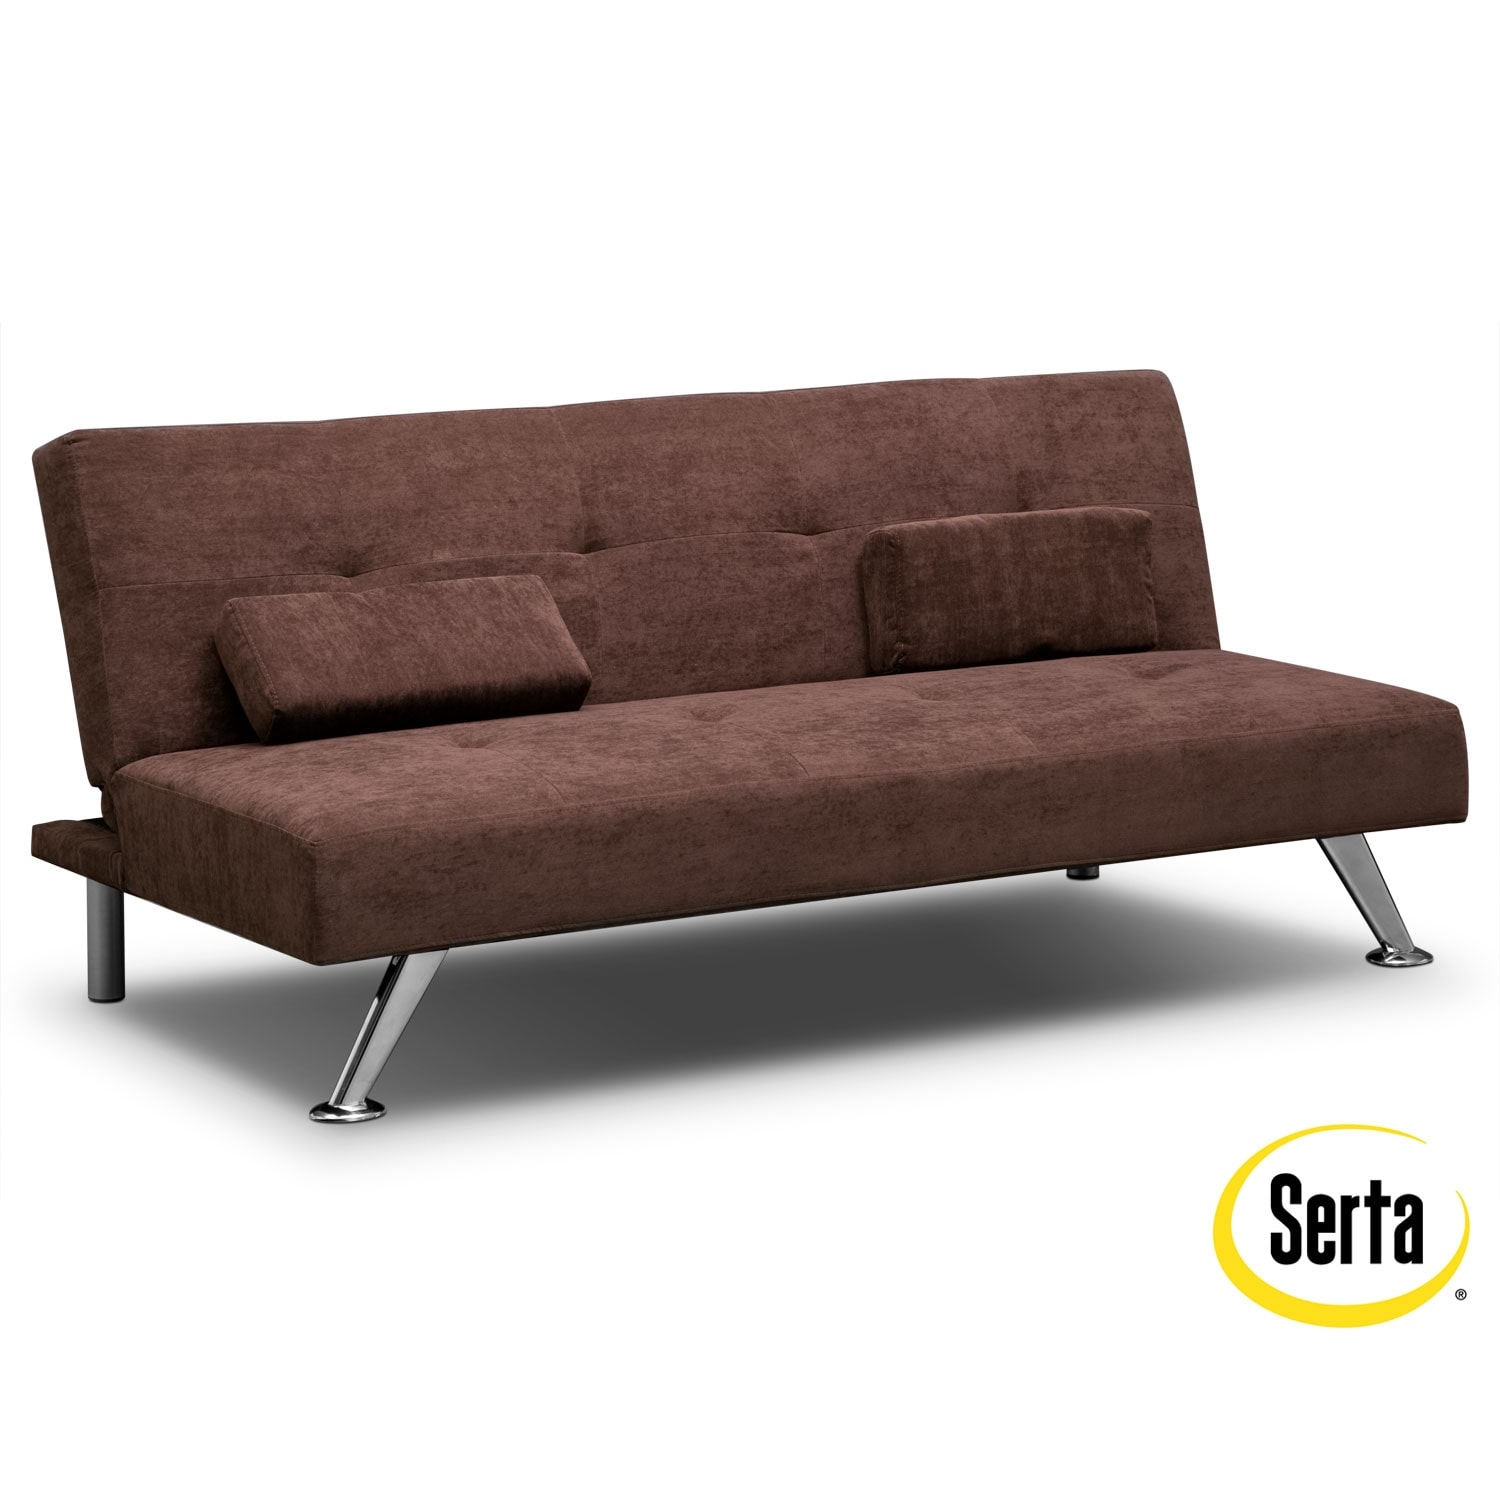 Living Room Furniture - Marlene Futon Sofa Bed